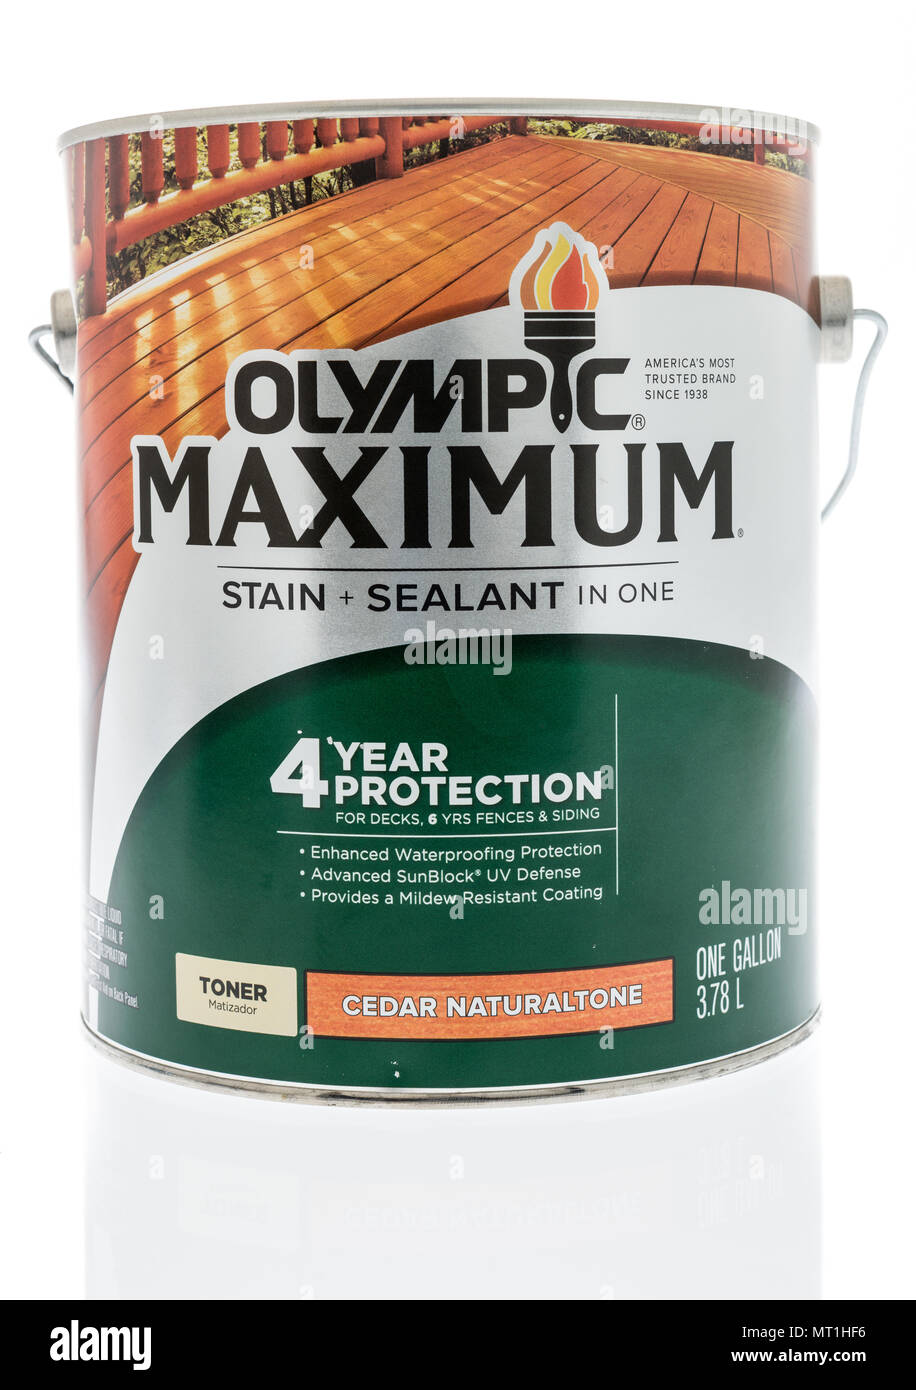 Winneconne - 24 May 2018: A can of Olympic maximum stain and sealant in one for decks and fences on an isolated background. Stock Photo